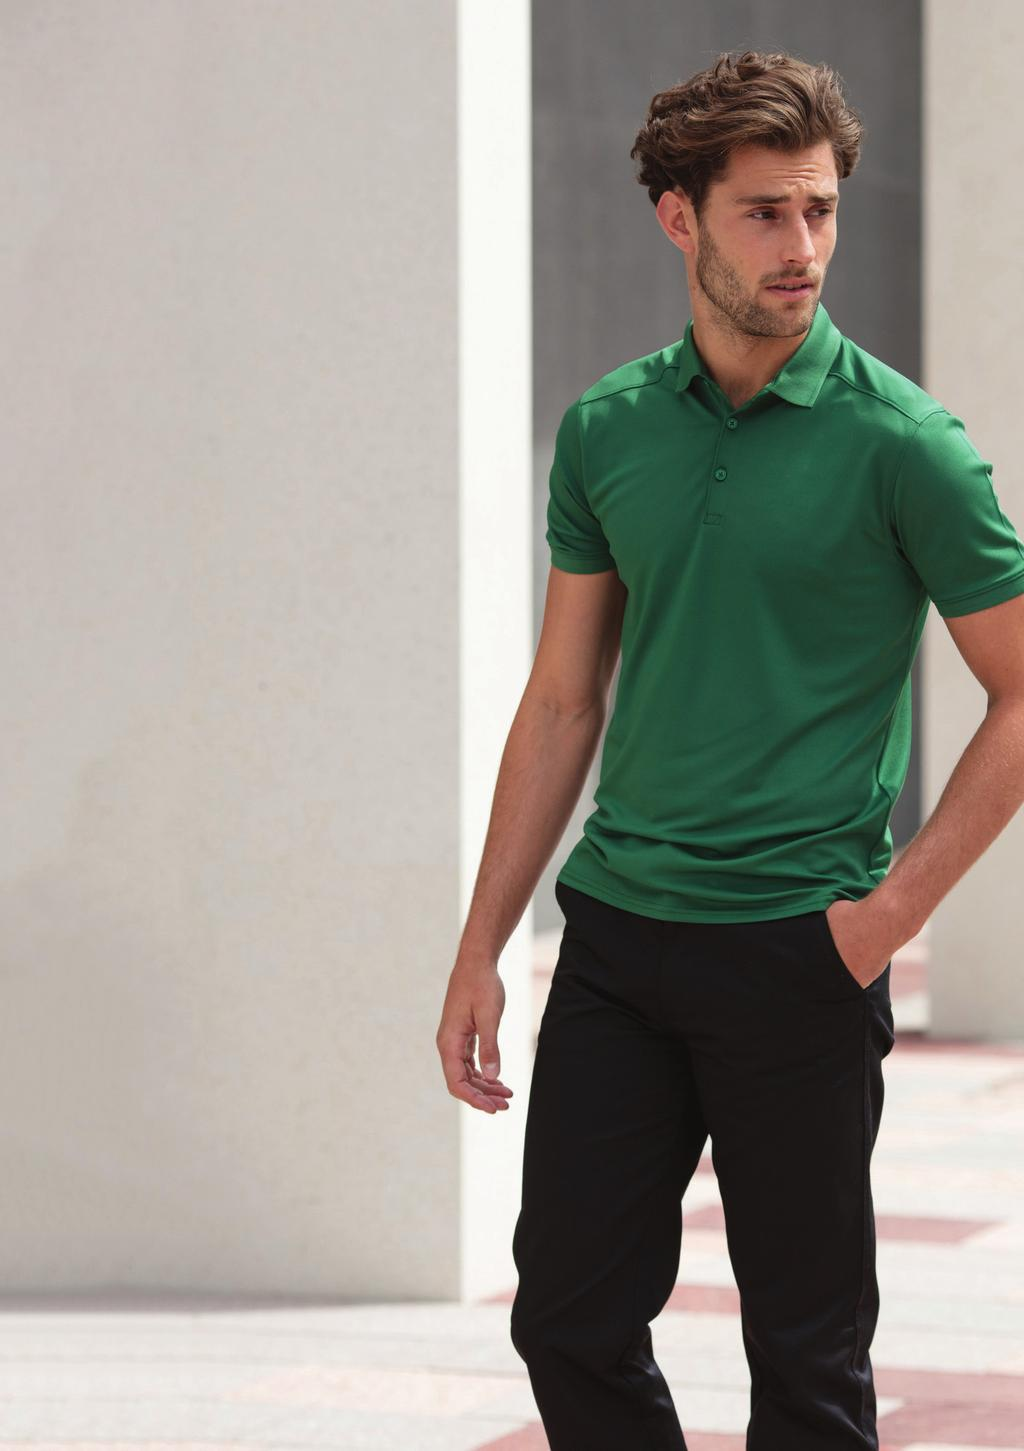 MEN S AND LADIES STRETCH WICKING POLO SHIRTS H460 H461 Stretch wicking fabric technology. Slimmer fit with 3 button placket. Front and back shoulder yoke detail. 1x1 ribbed collar and cuffs.